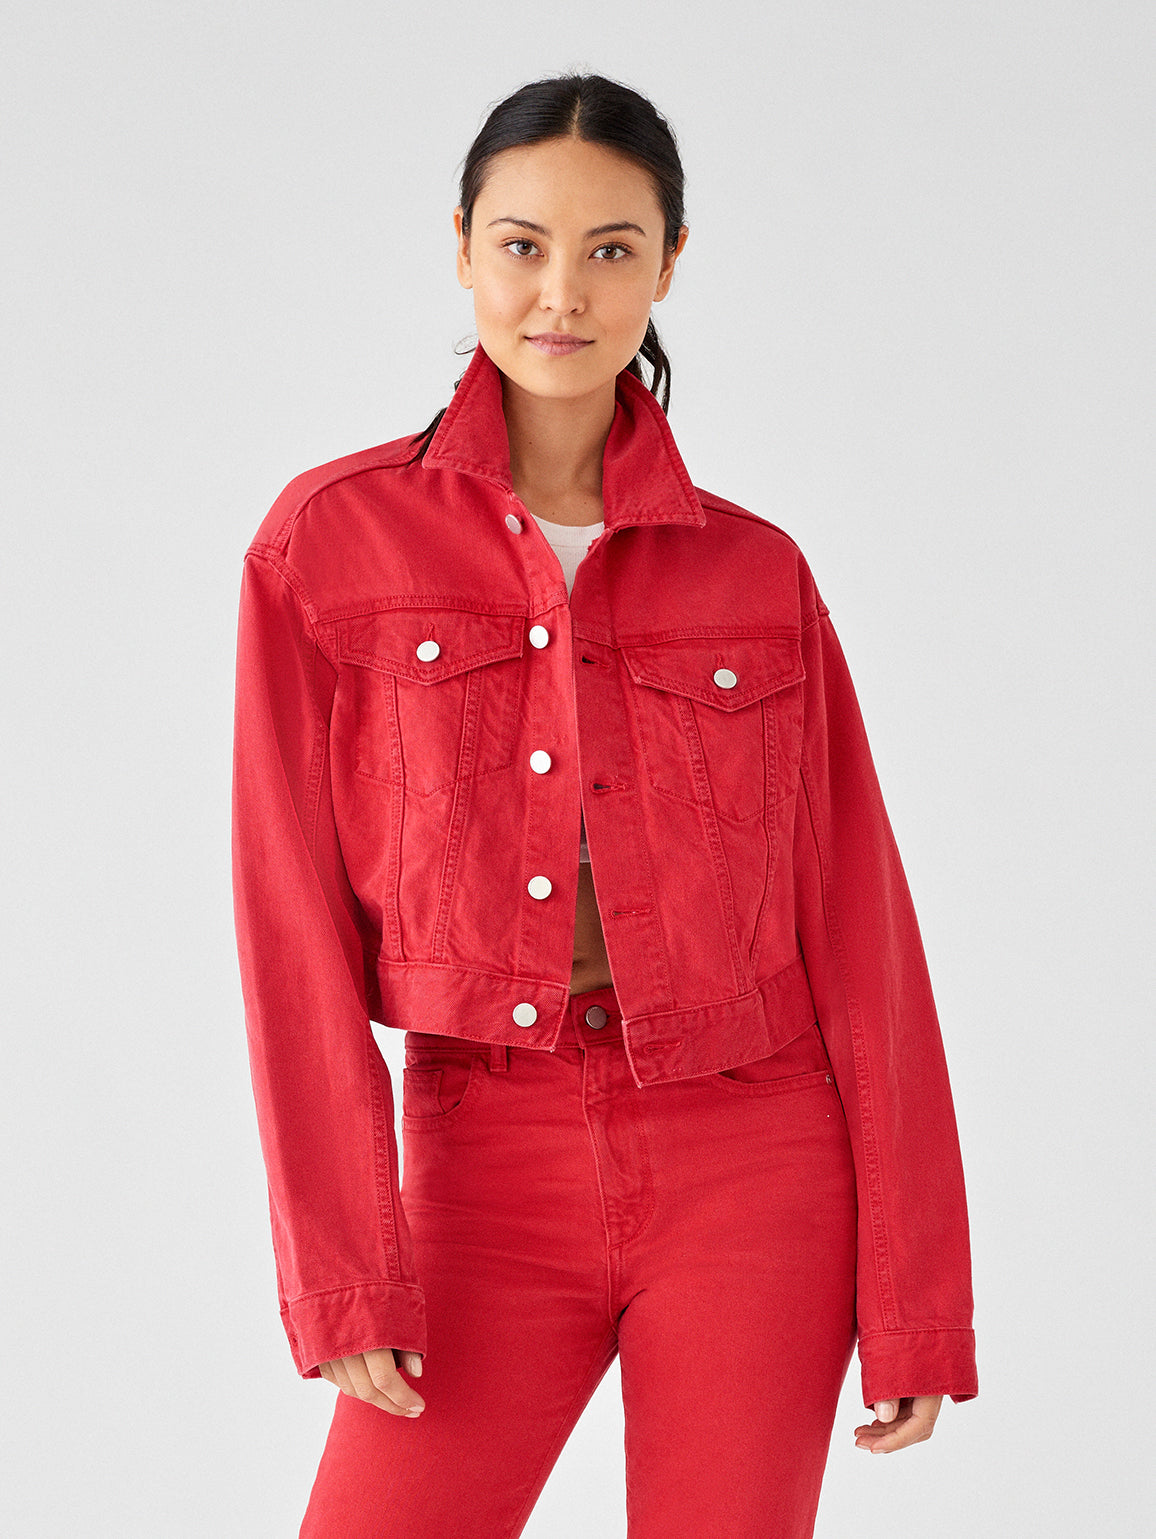 Shop DL1961 Premium Denim - Annie Cropped Oversized Jacket | Outlaw Red